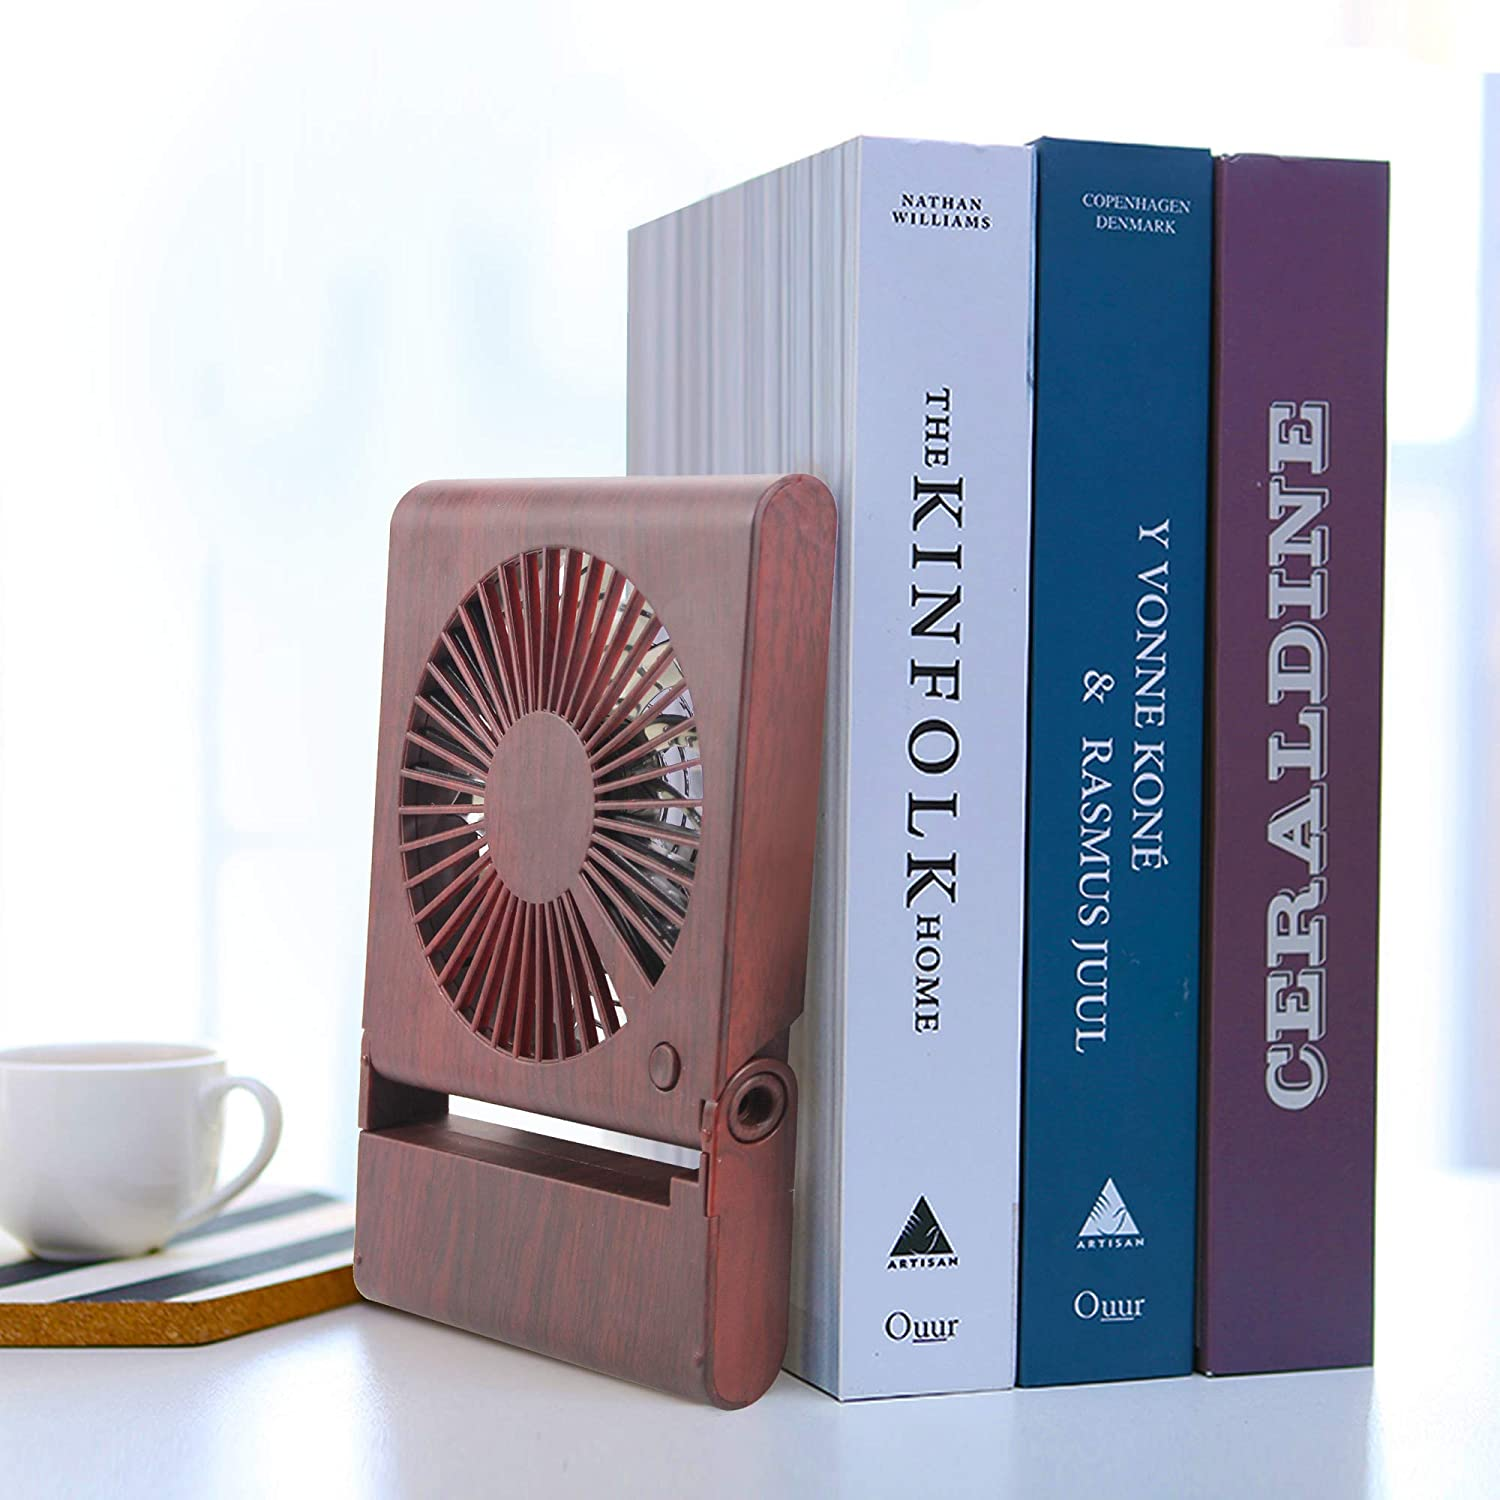 Mini Personal Fan Portable Fan with 3 Speeds Adjustable Powerful Airflow Rechargeable Battery Operated Easy to Store Low Noise for Office Travel Camping Home Desk Fan Small USB Fan Soundance